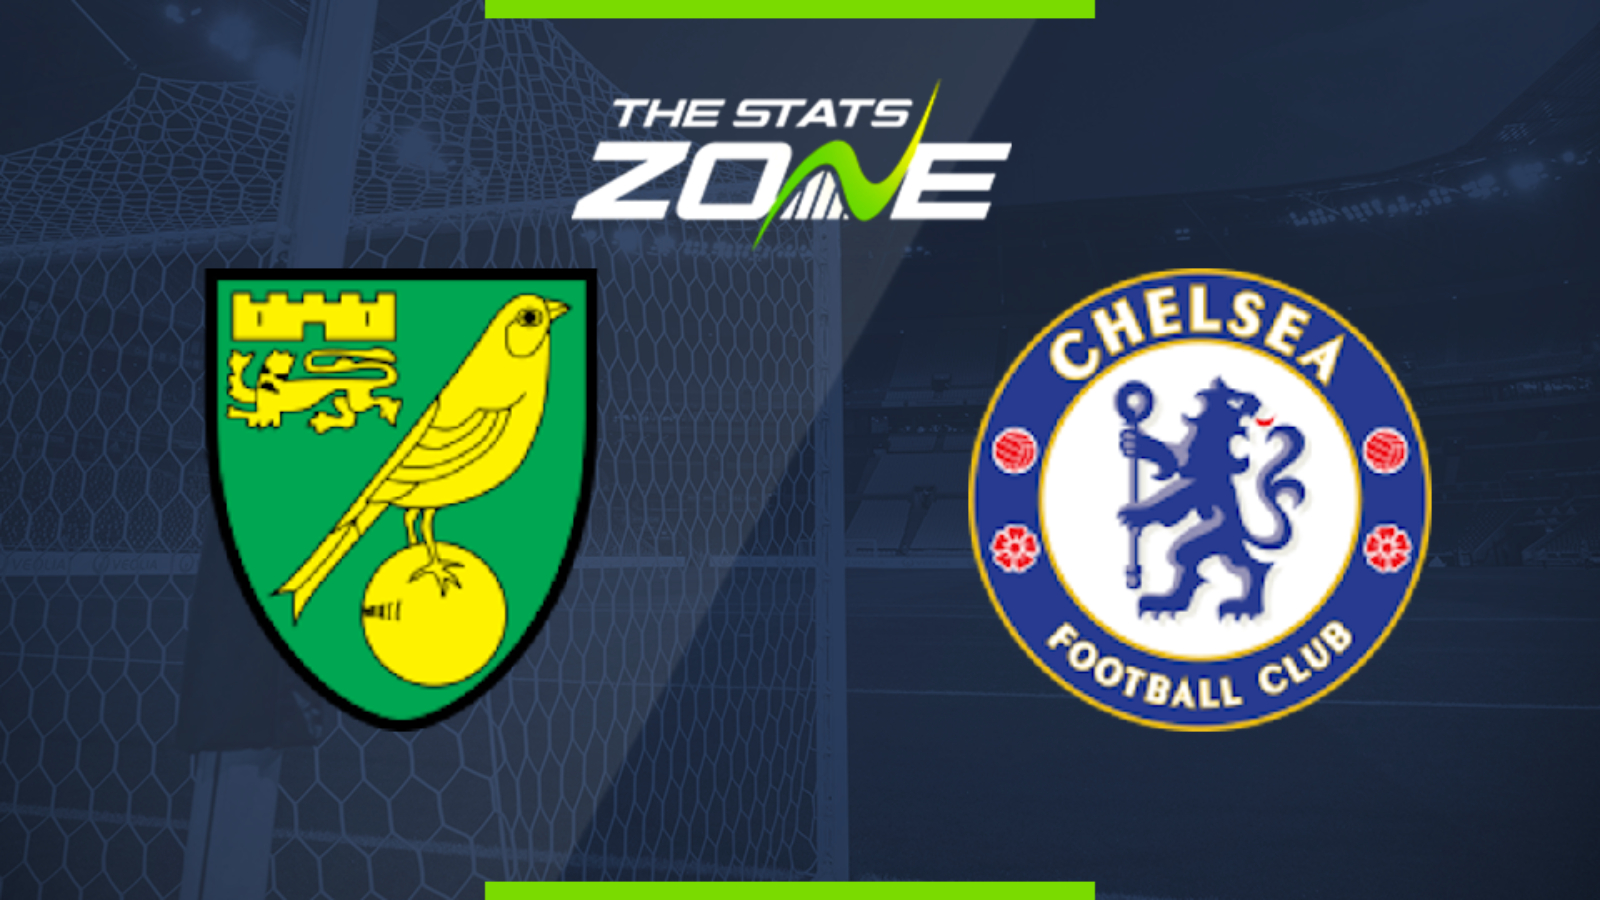 Kante of Chelsea suffers ankle injury in training and could miss Norwich